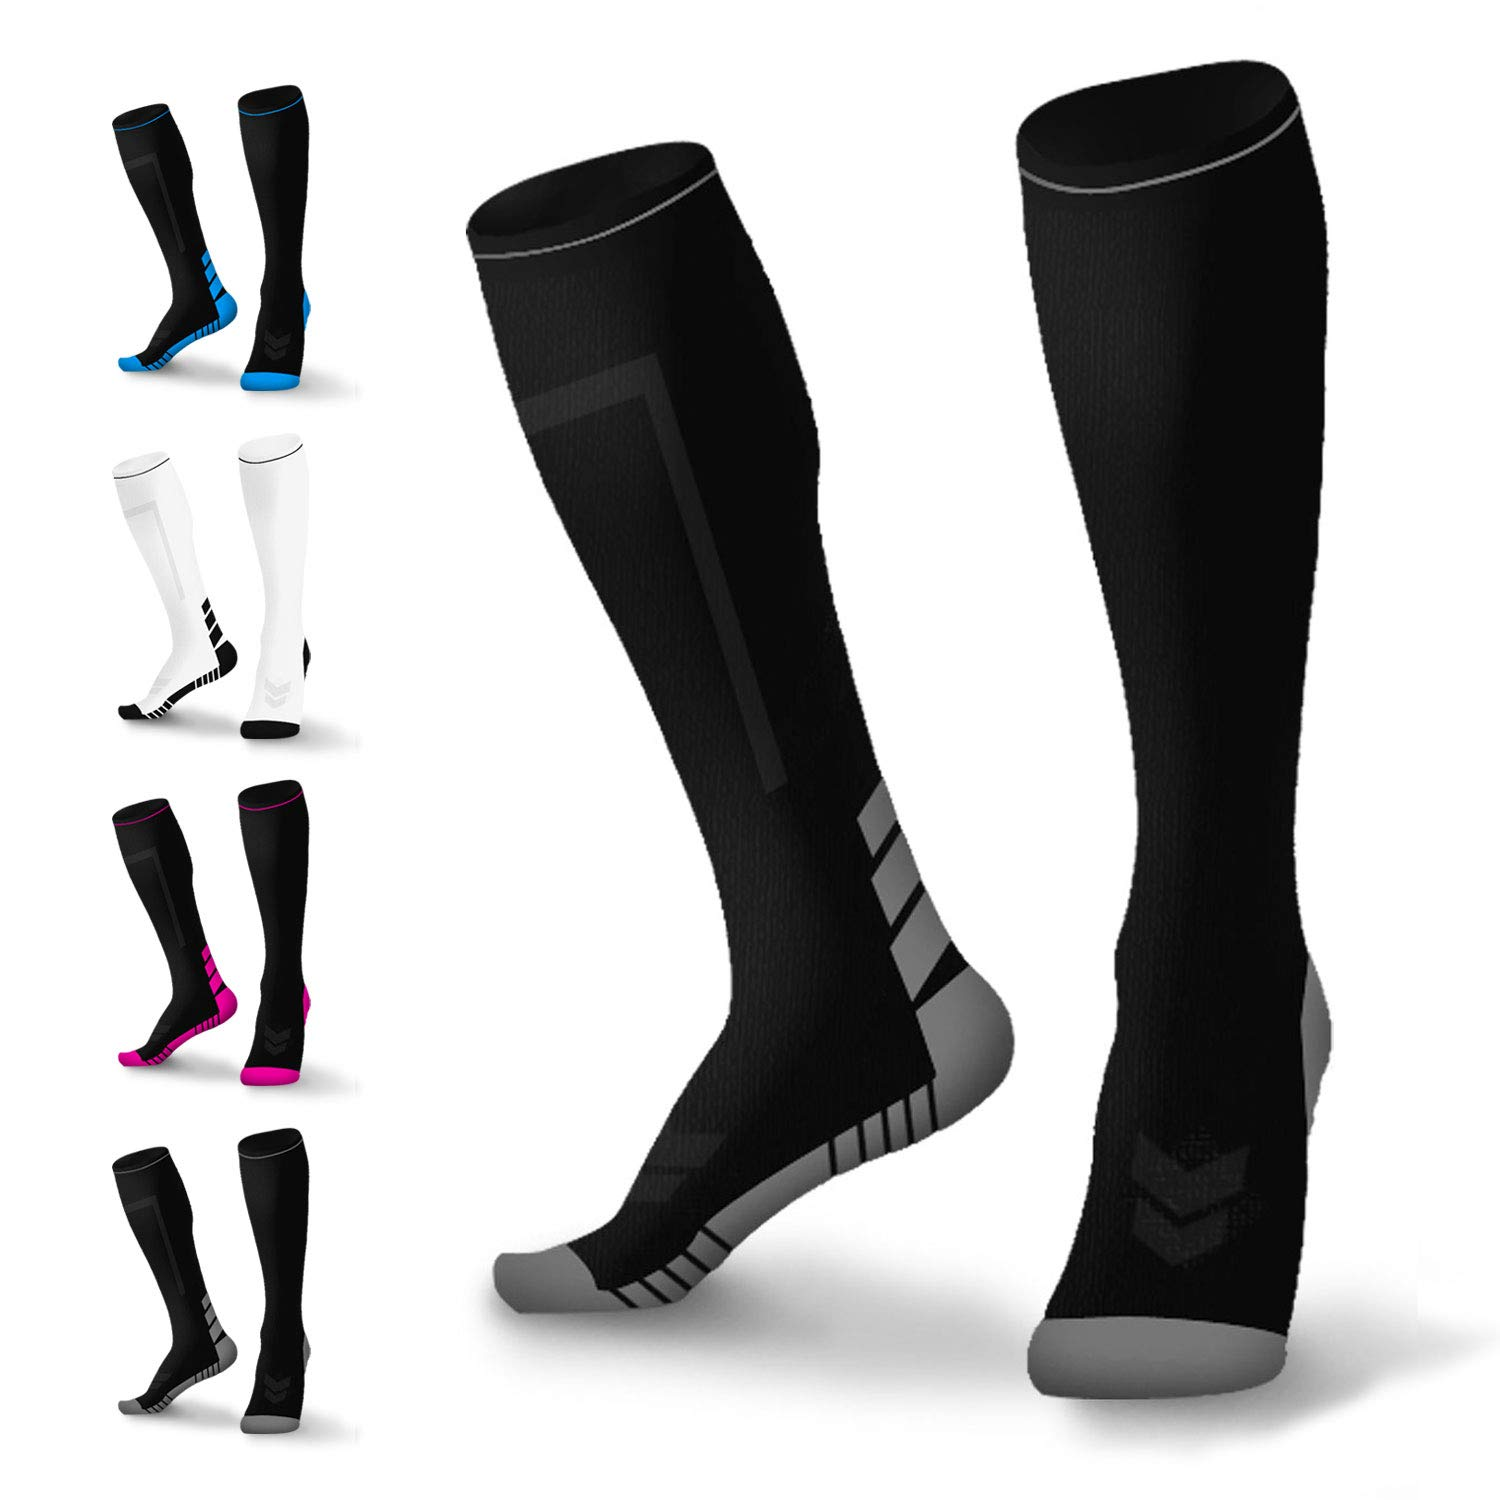 HZHY Compression Socks for Men & Women 15-20mmhg,Cushioned Graduated Compression Socks